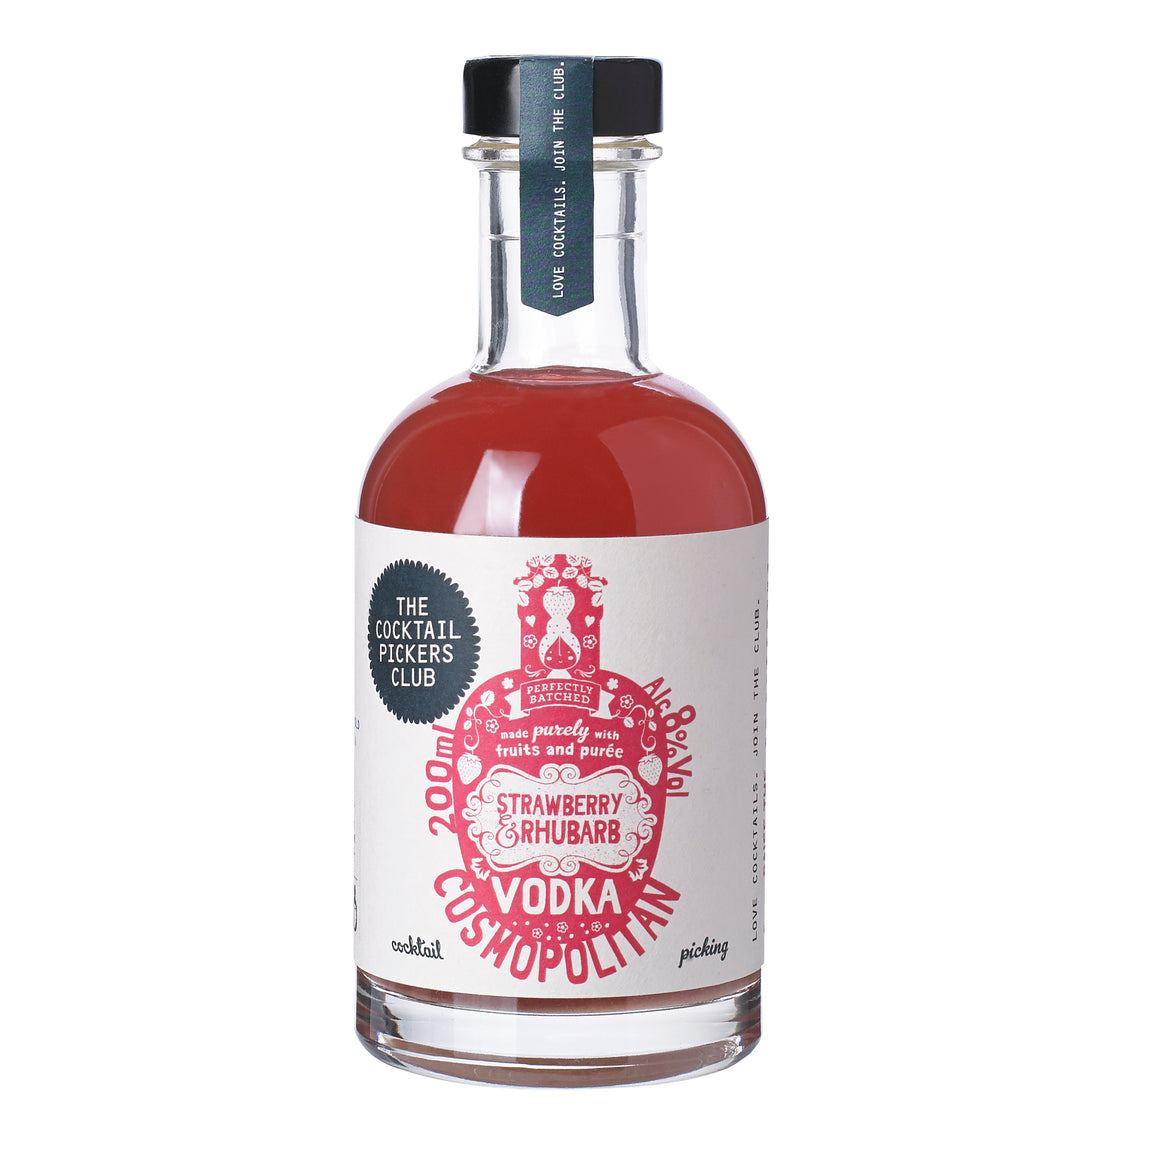 'Mini Pickers' Strawberry and Rhubarb Vodka Cosmopolitan 200ml